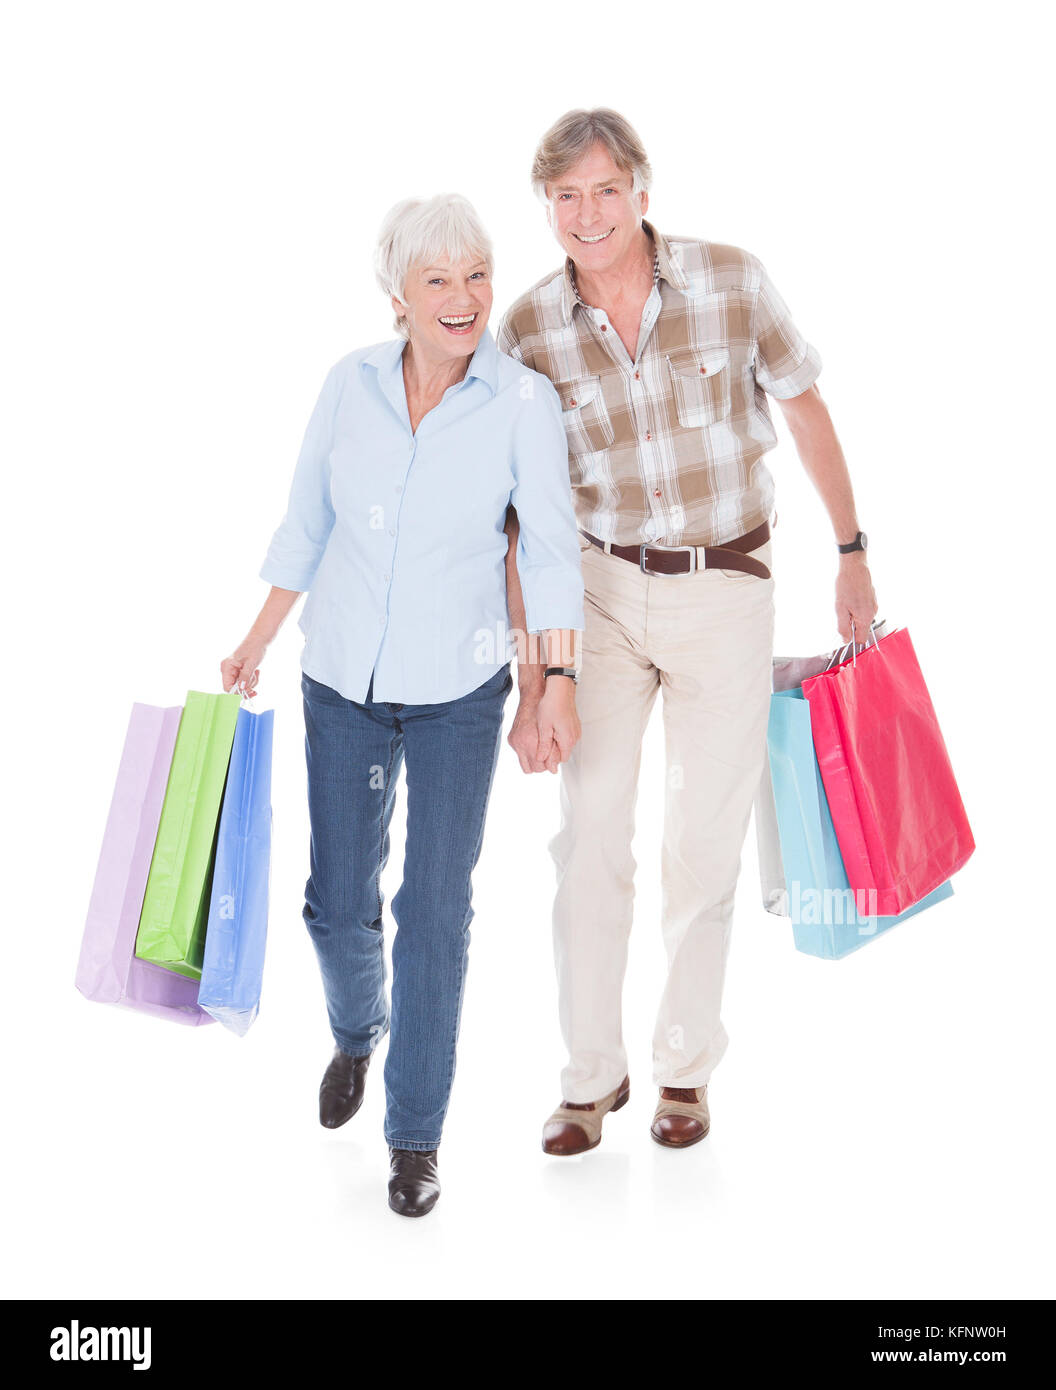 Happy Seniors Couple Walking With Shopping Bag Over White Background - Stock Image